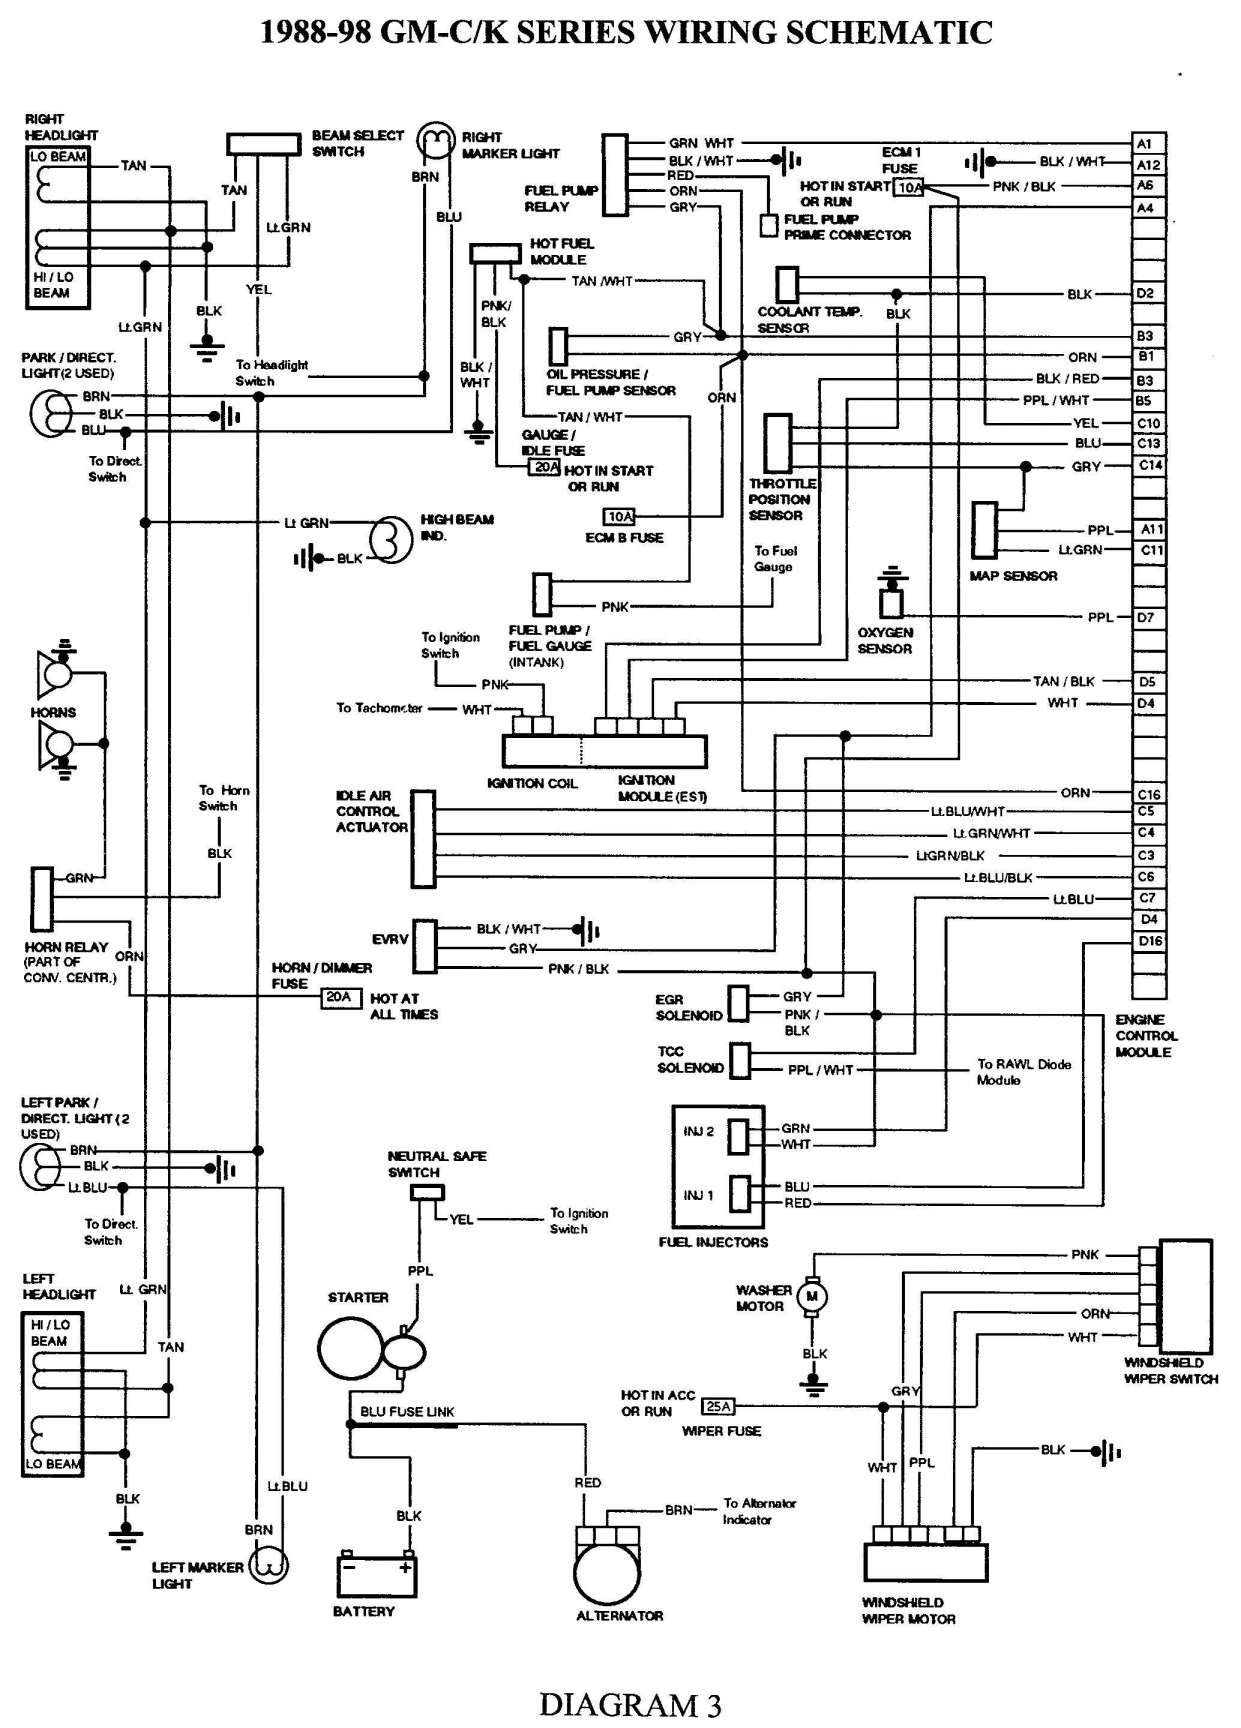 1992 3500chevy Truck Wiring Diagram And Pin On Kc In 2020 Electrical Diagram 1986 Chevy Truck Electrical Wiring Diagram